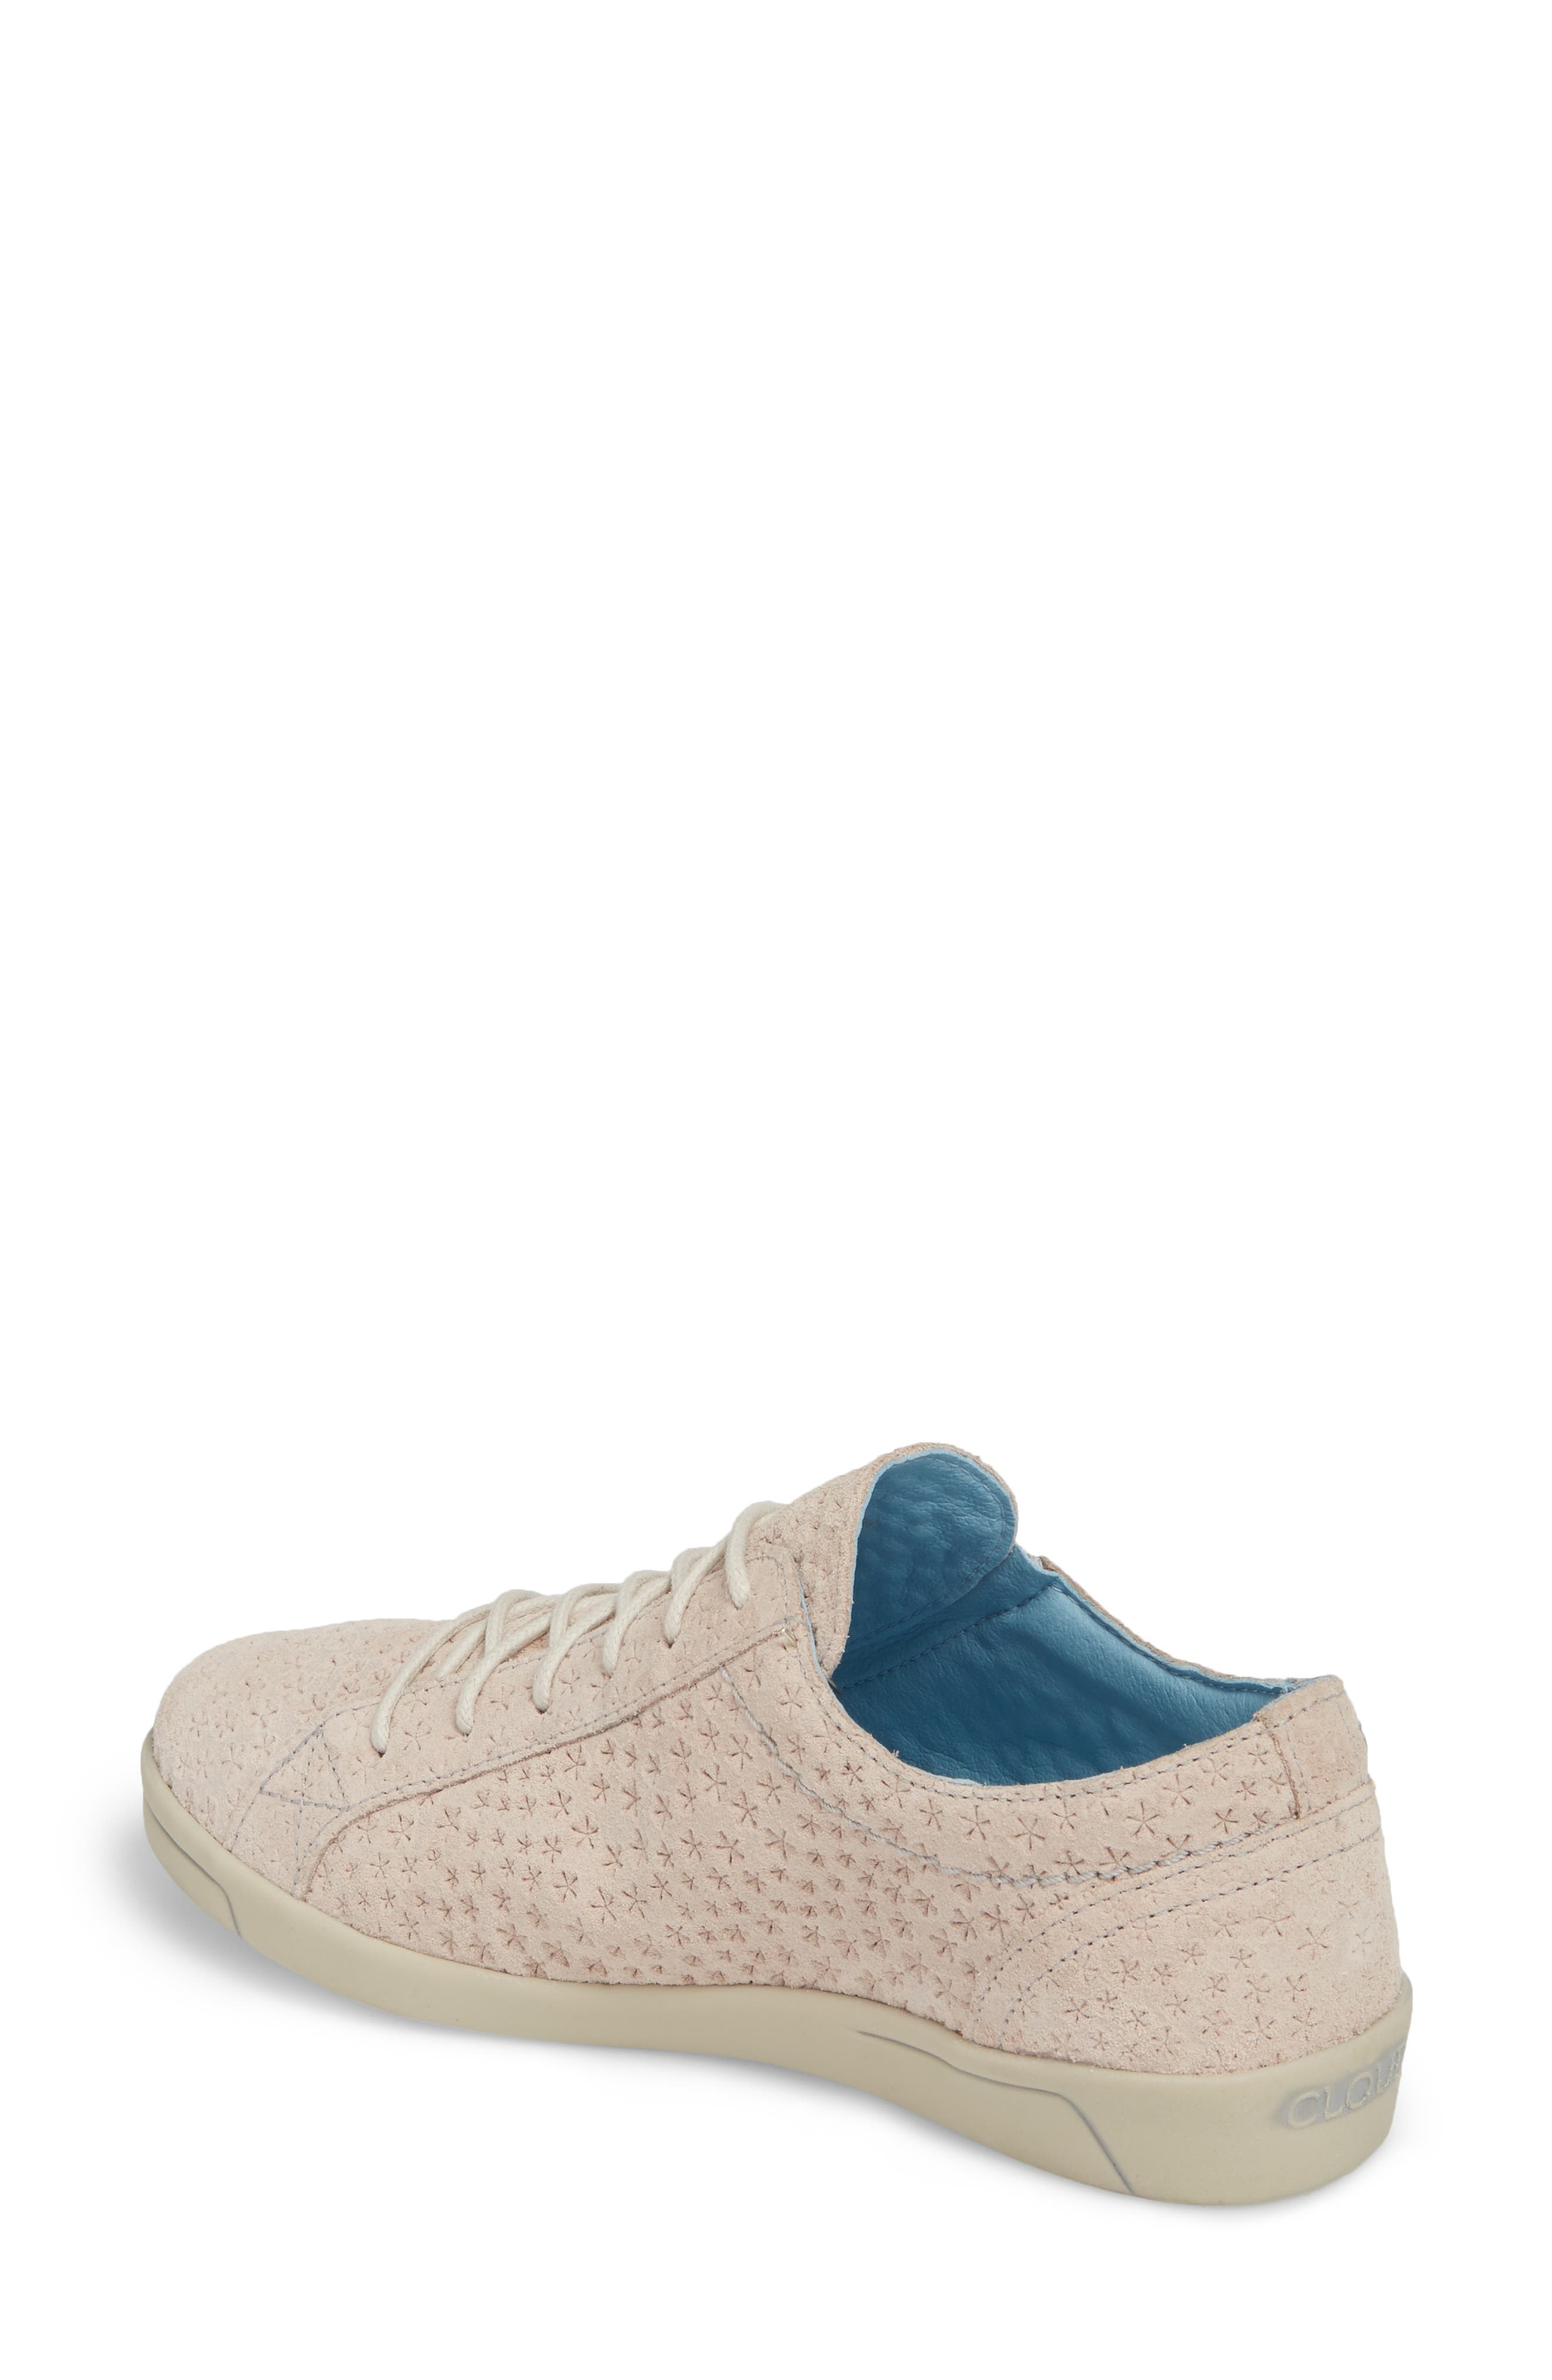 Aika Star Perforated Sneaker,                             Alternate thumbnail 2, color,                             Light Pink Leather